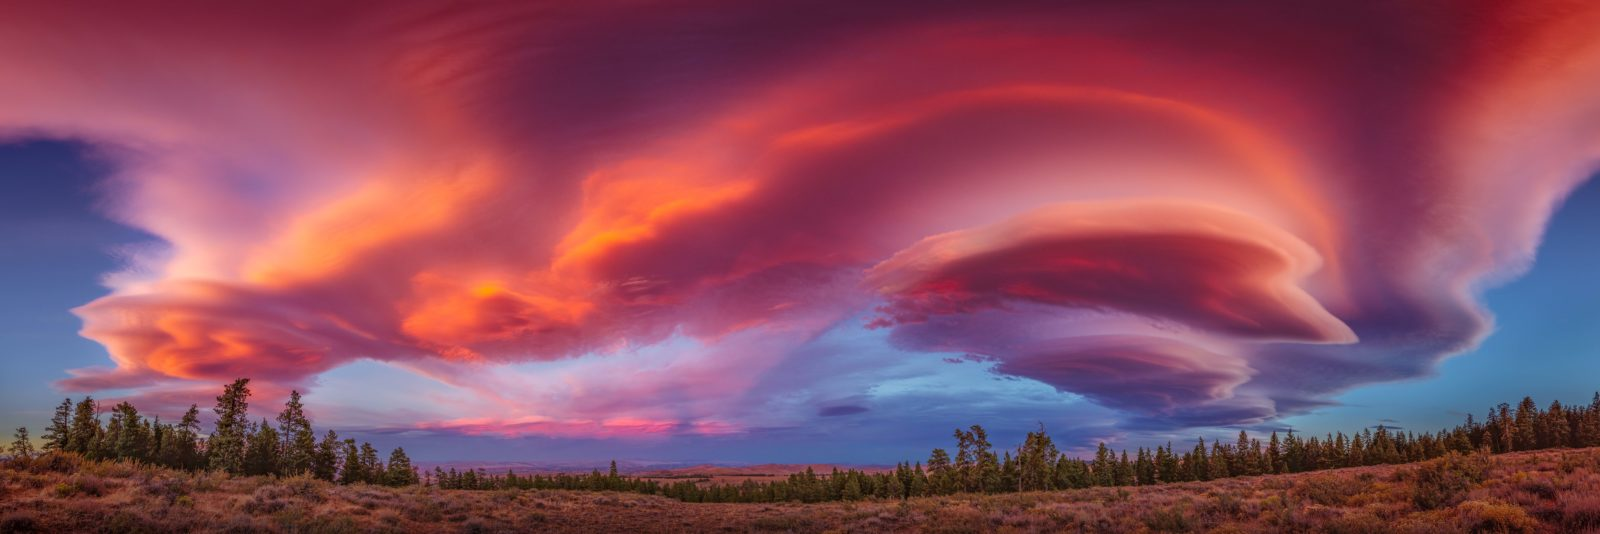 Lenticular at Sunset